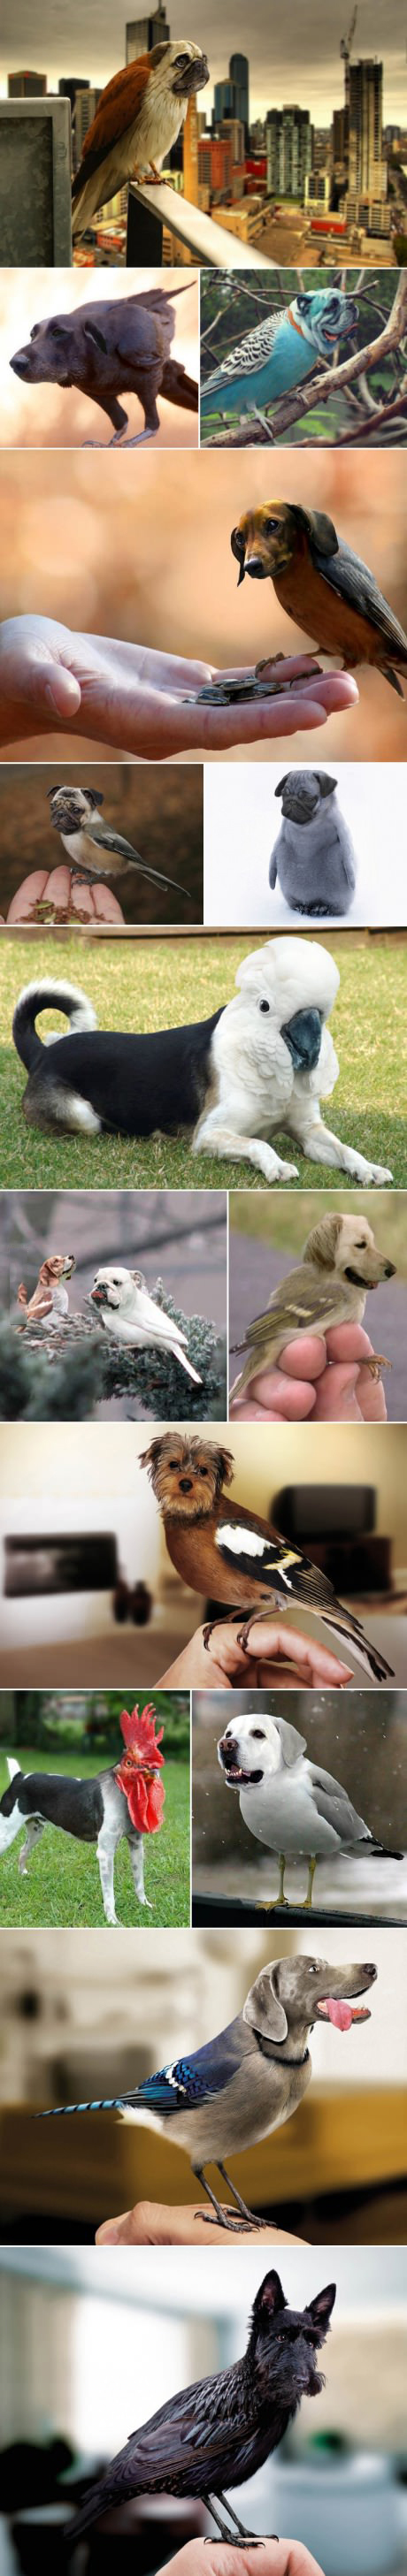 After Birds with Arms why not Dog/Bird Hybrids